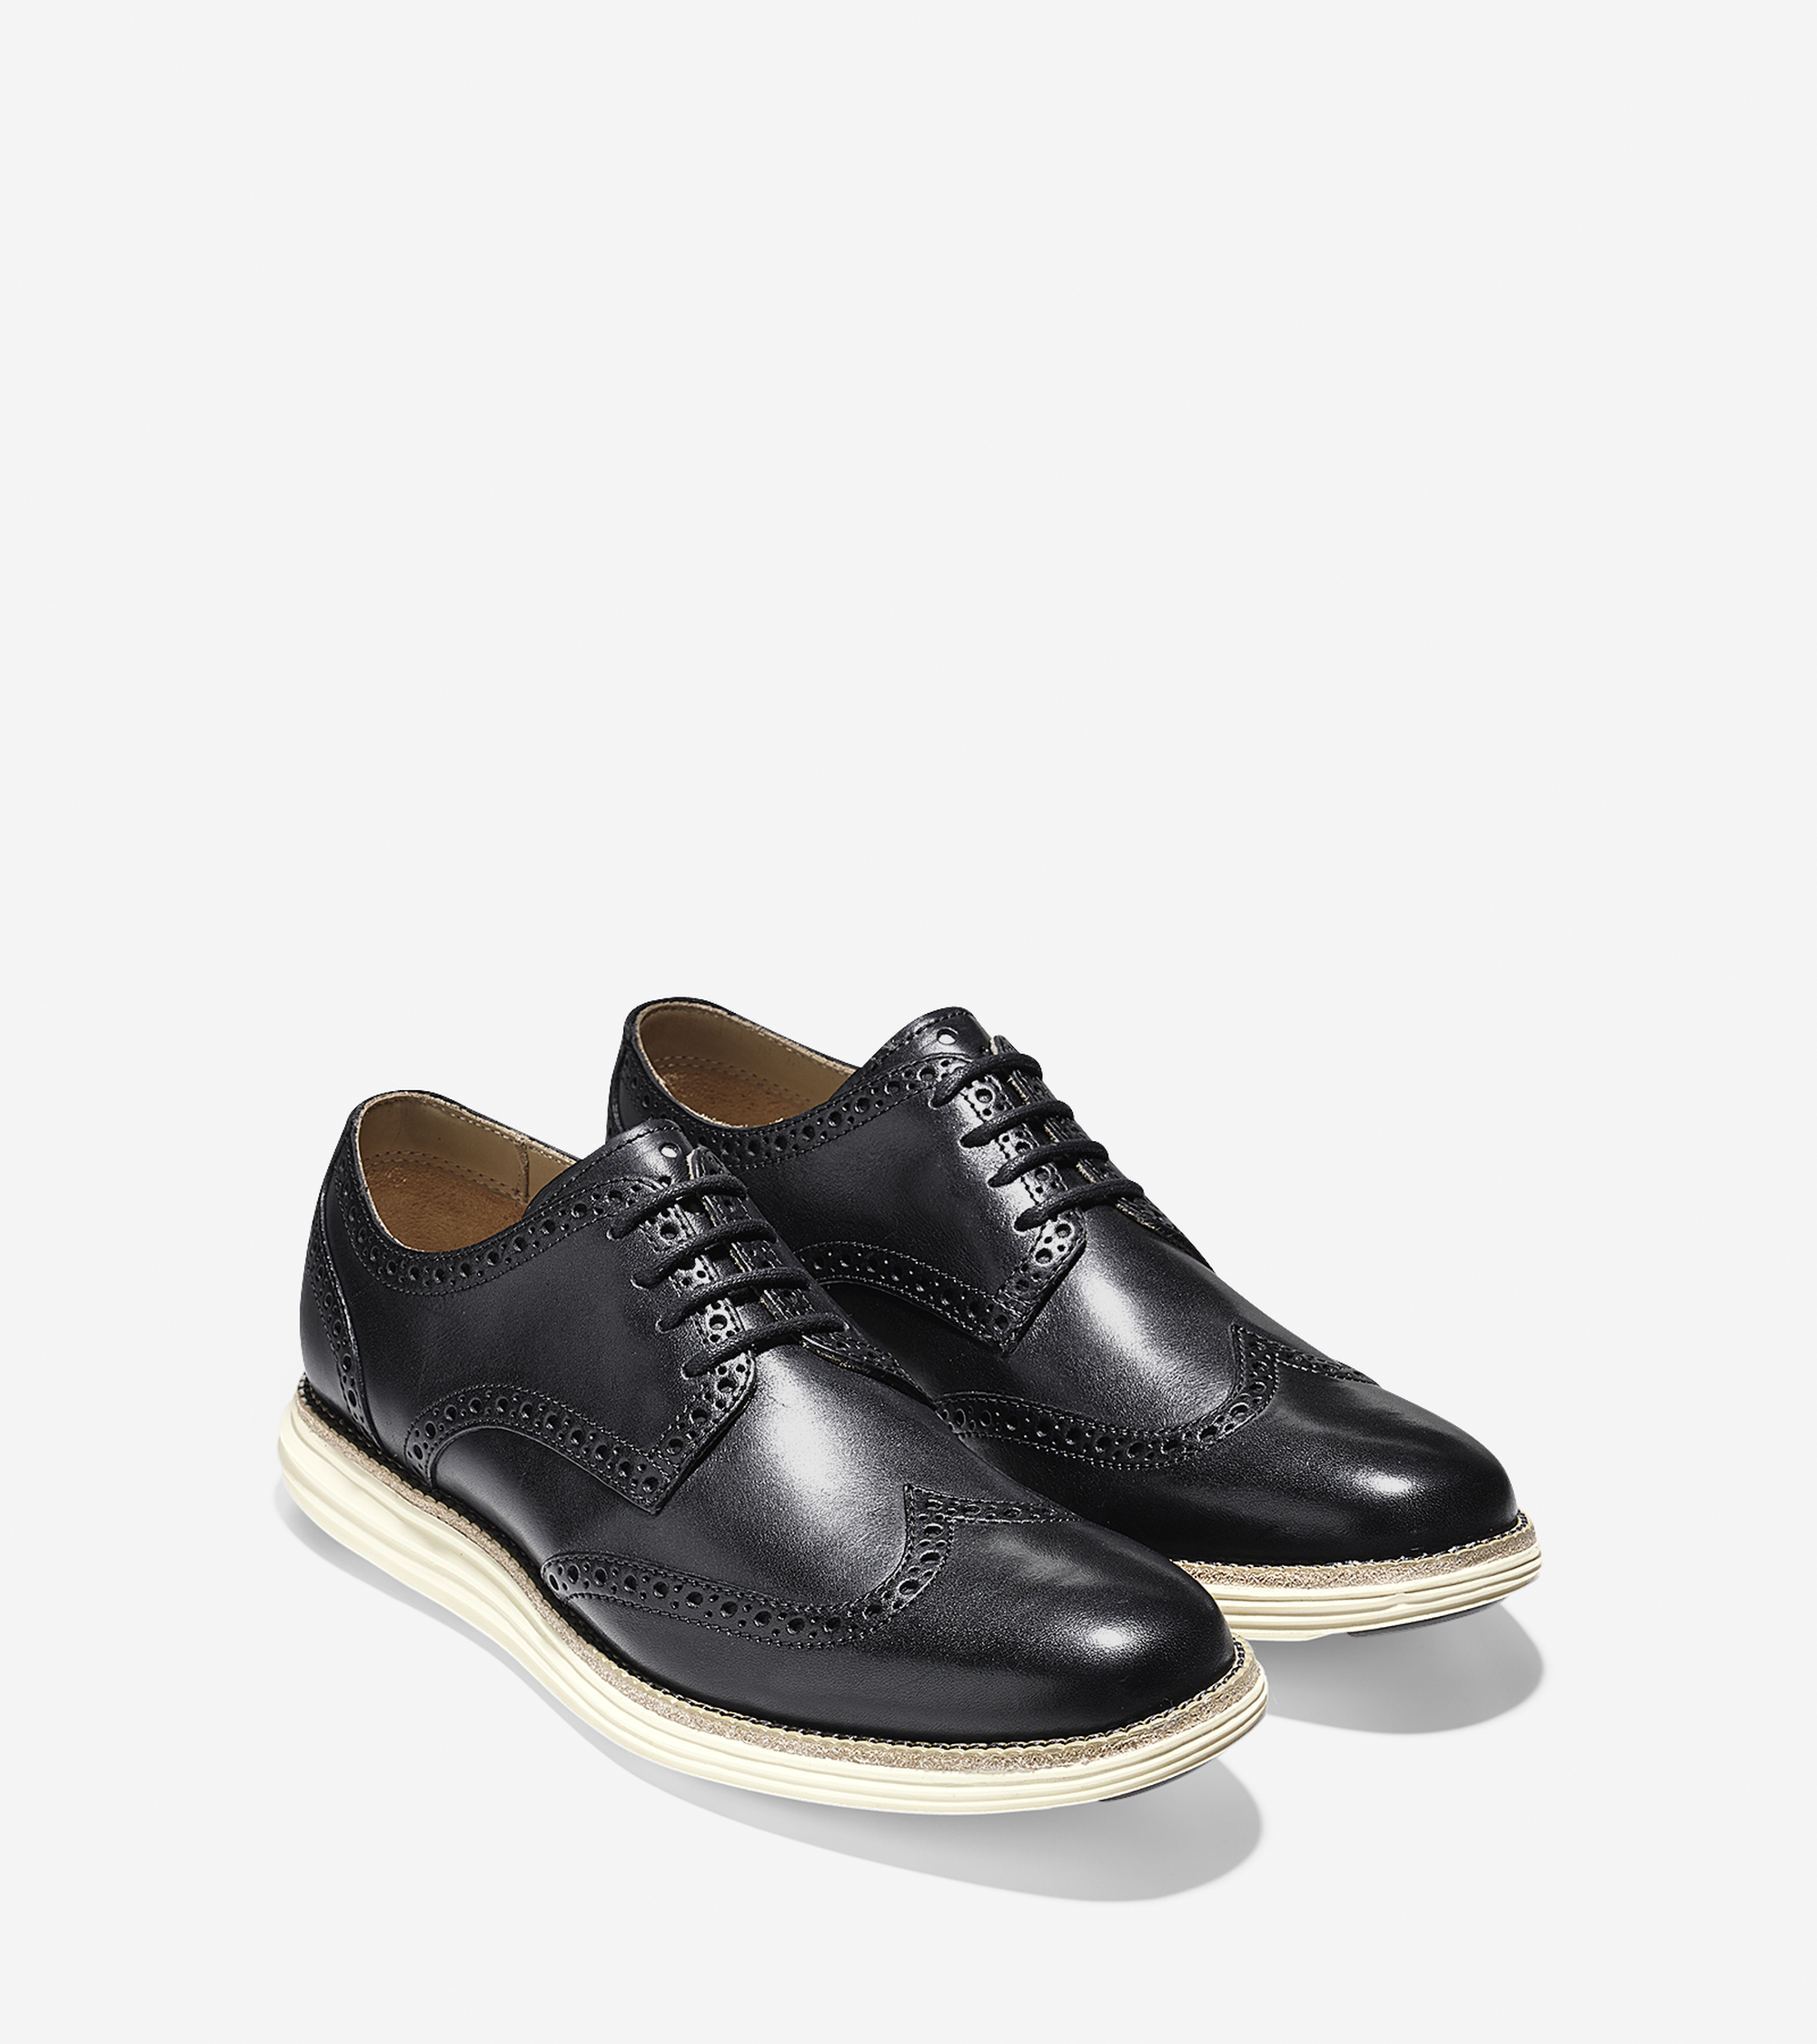 Black Wingtip Shoes